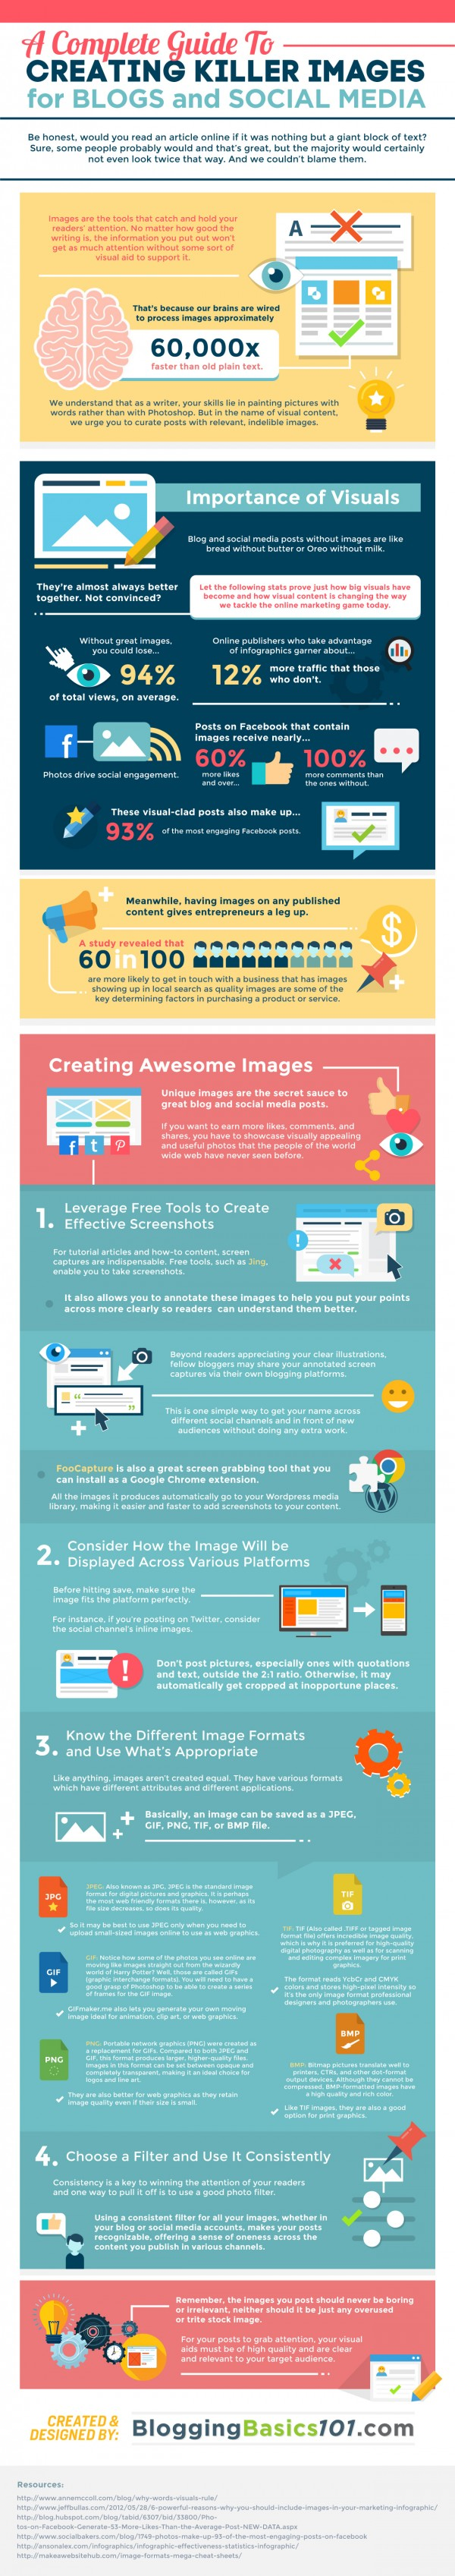 A Complete Guide to Creating Killer Images for Social Media and Blogs